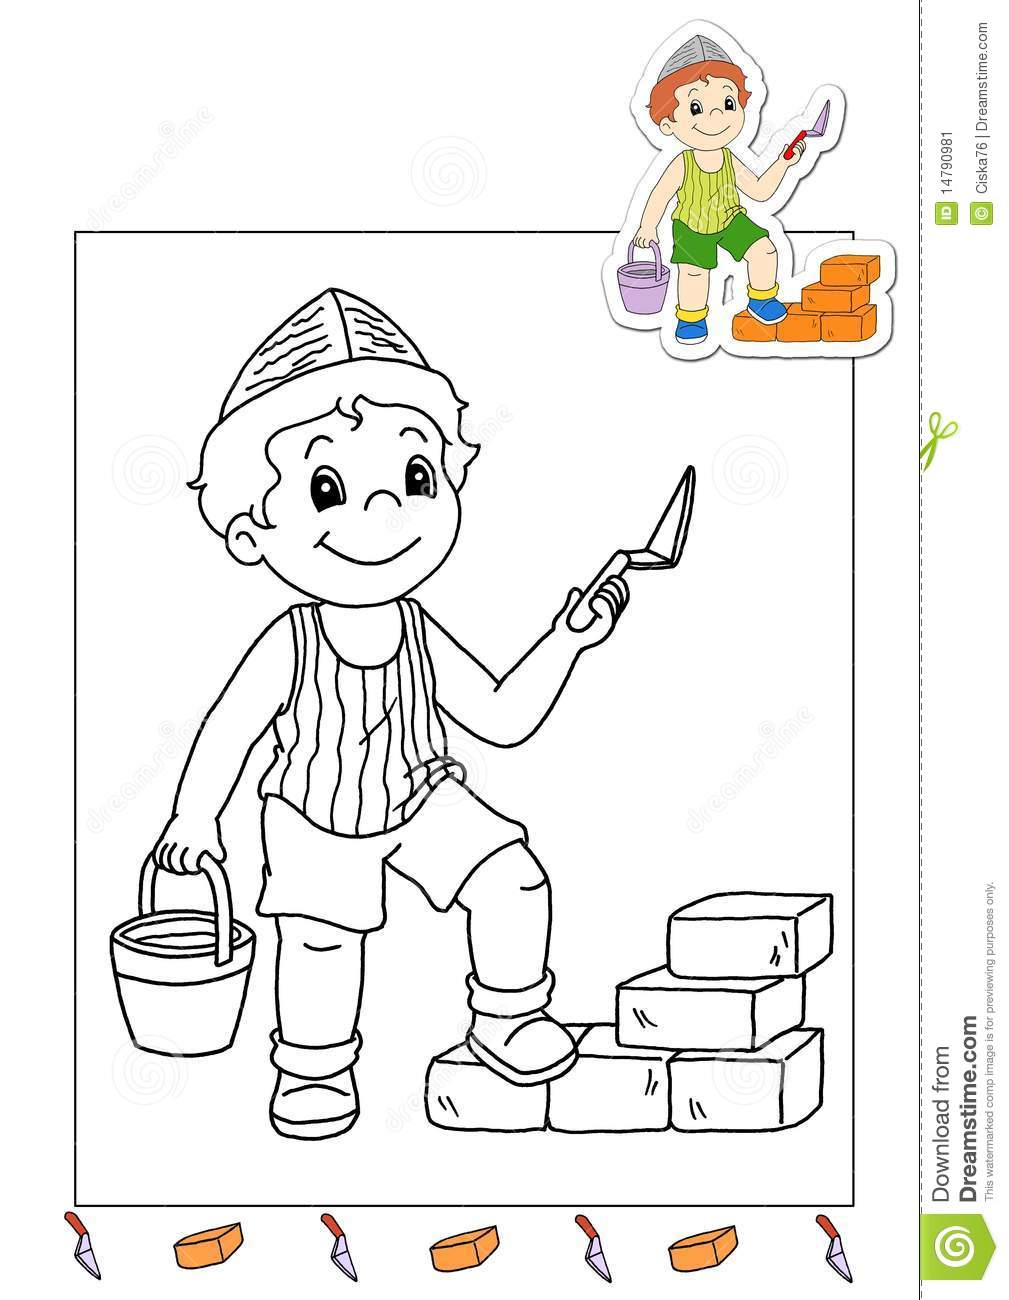 sample coloring pages for kids - photo#36